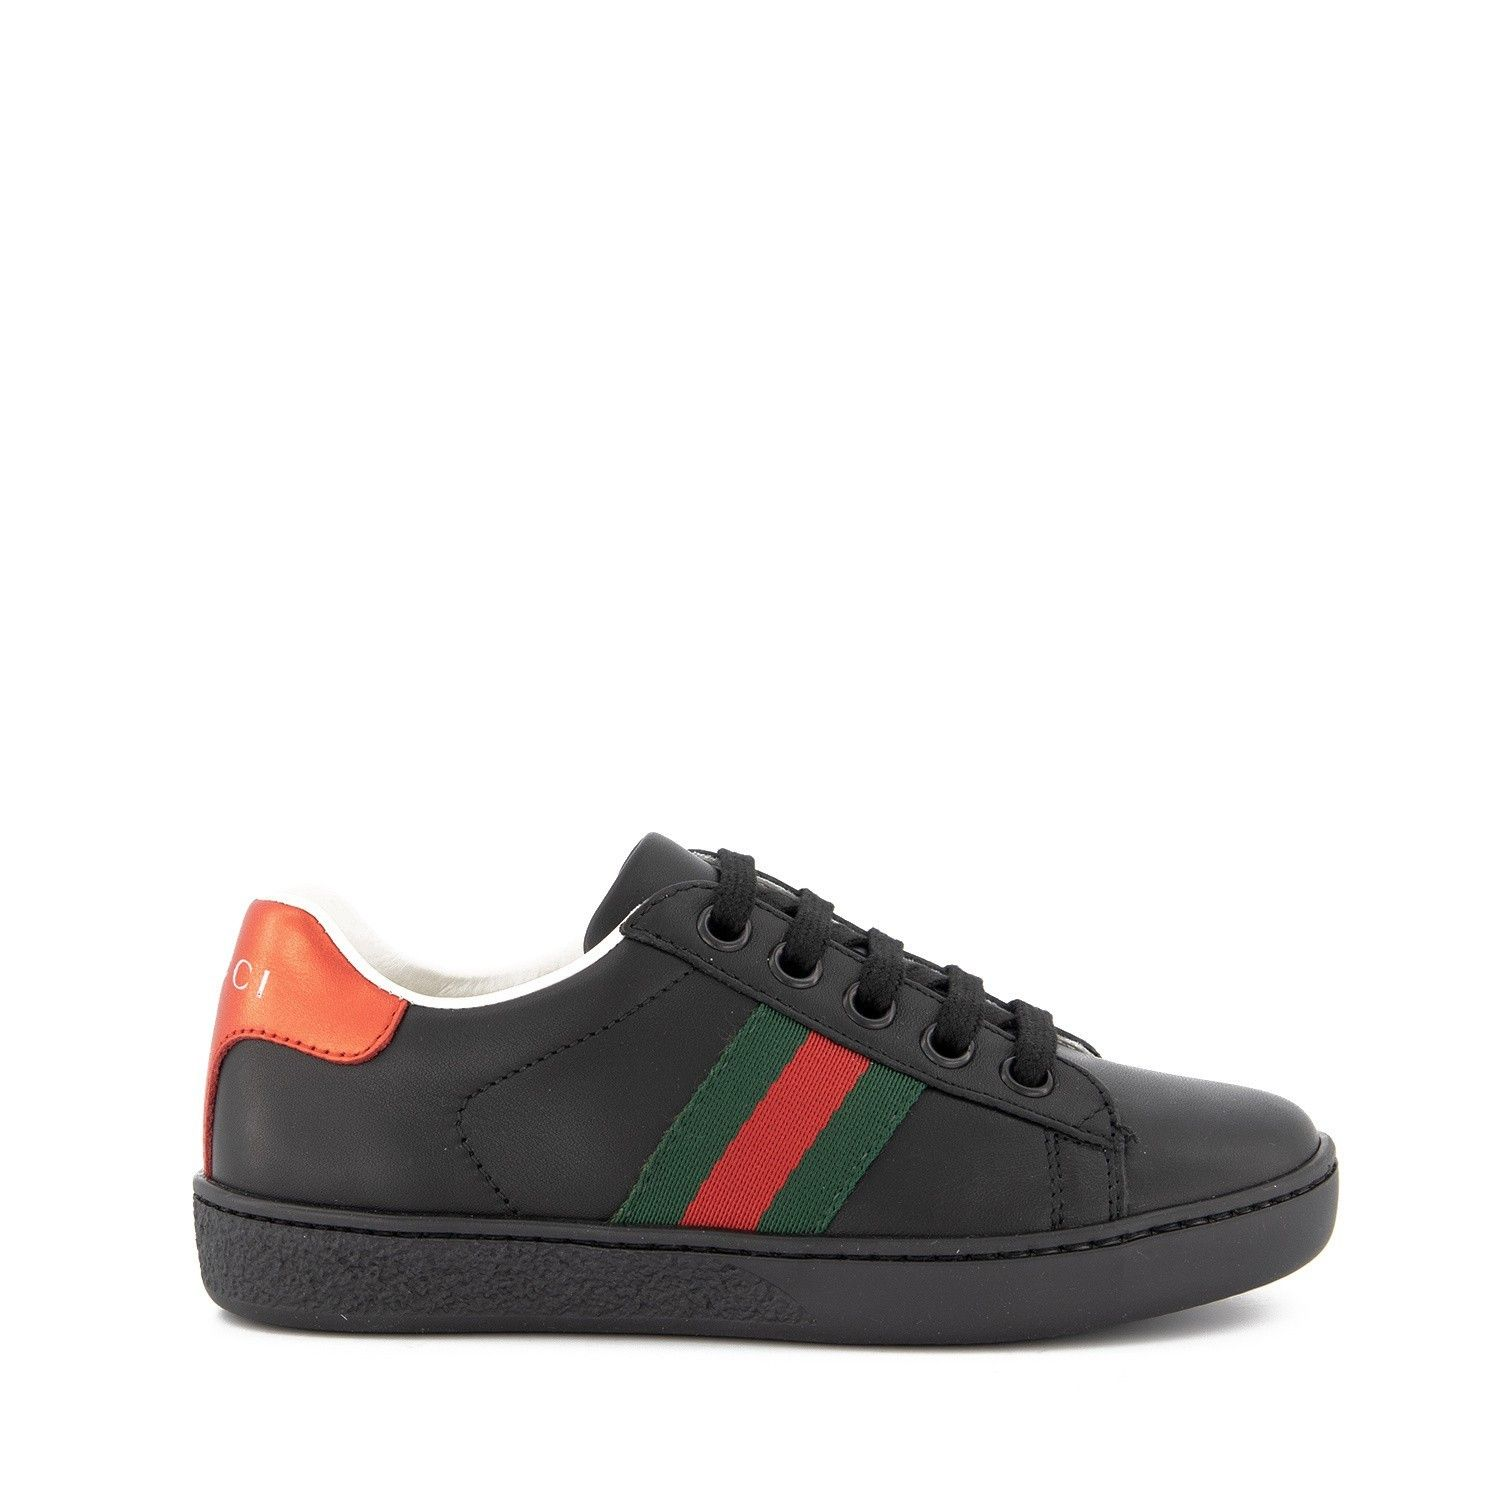 Picture of Gucci 433146 kids sneakers black